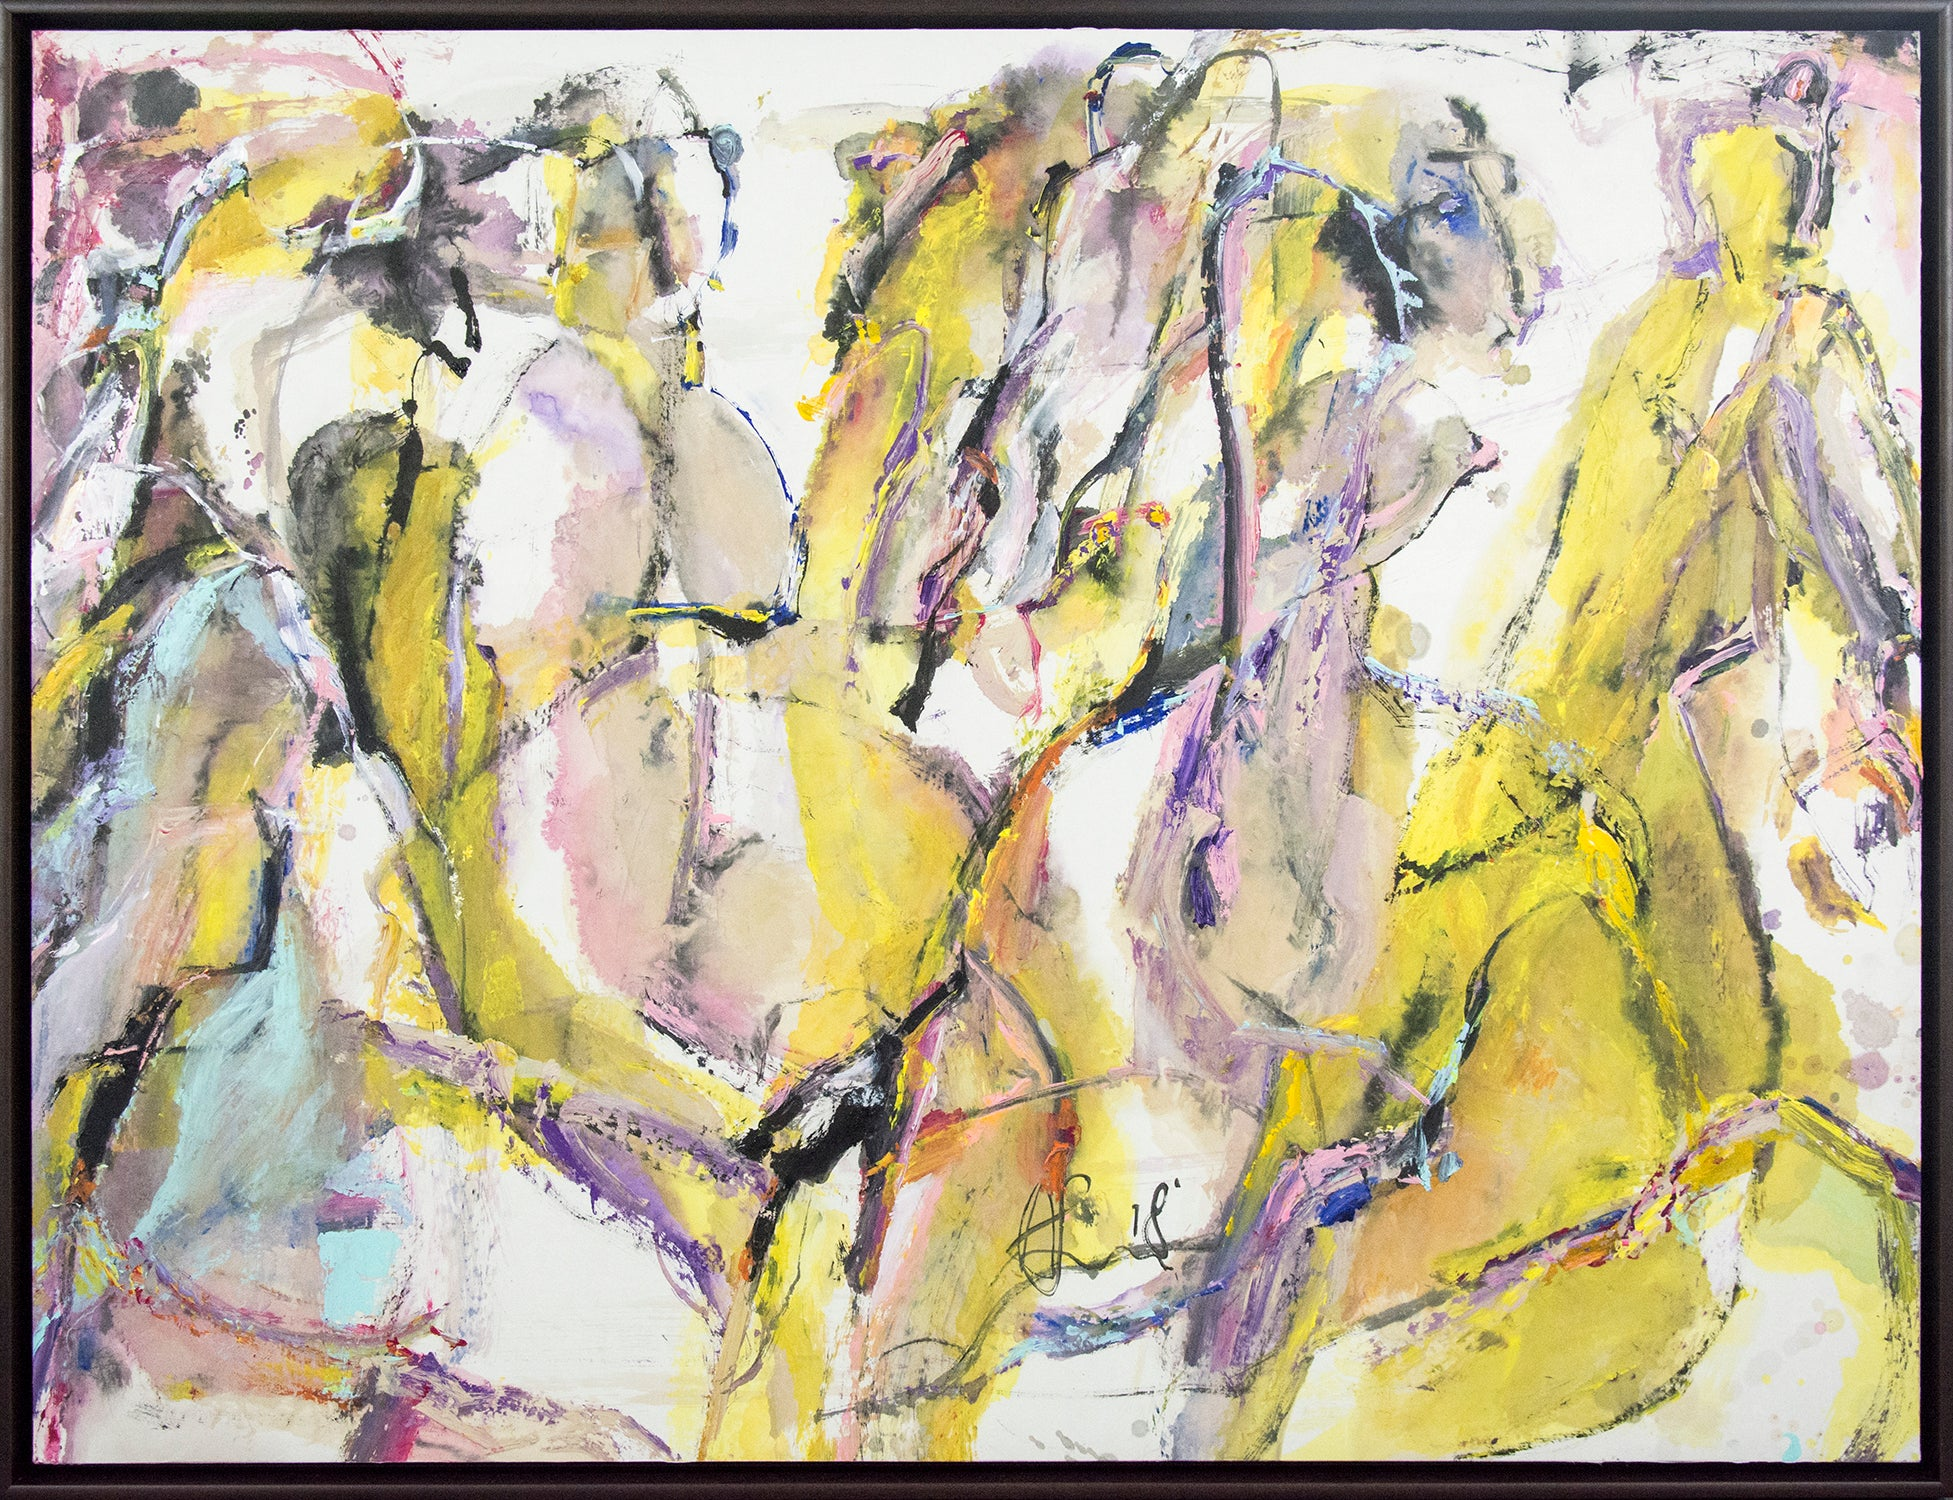 Spring Rumble II - bright, colourful, gesturally abstracted galloping horses